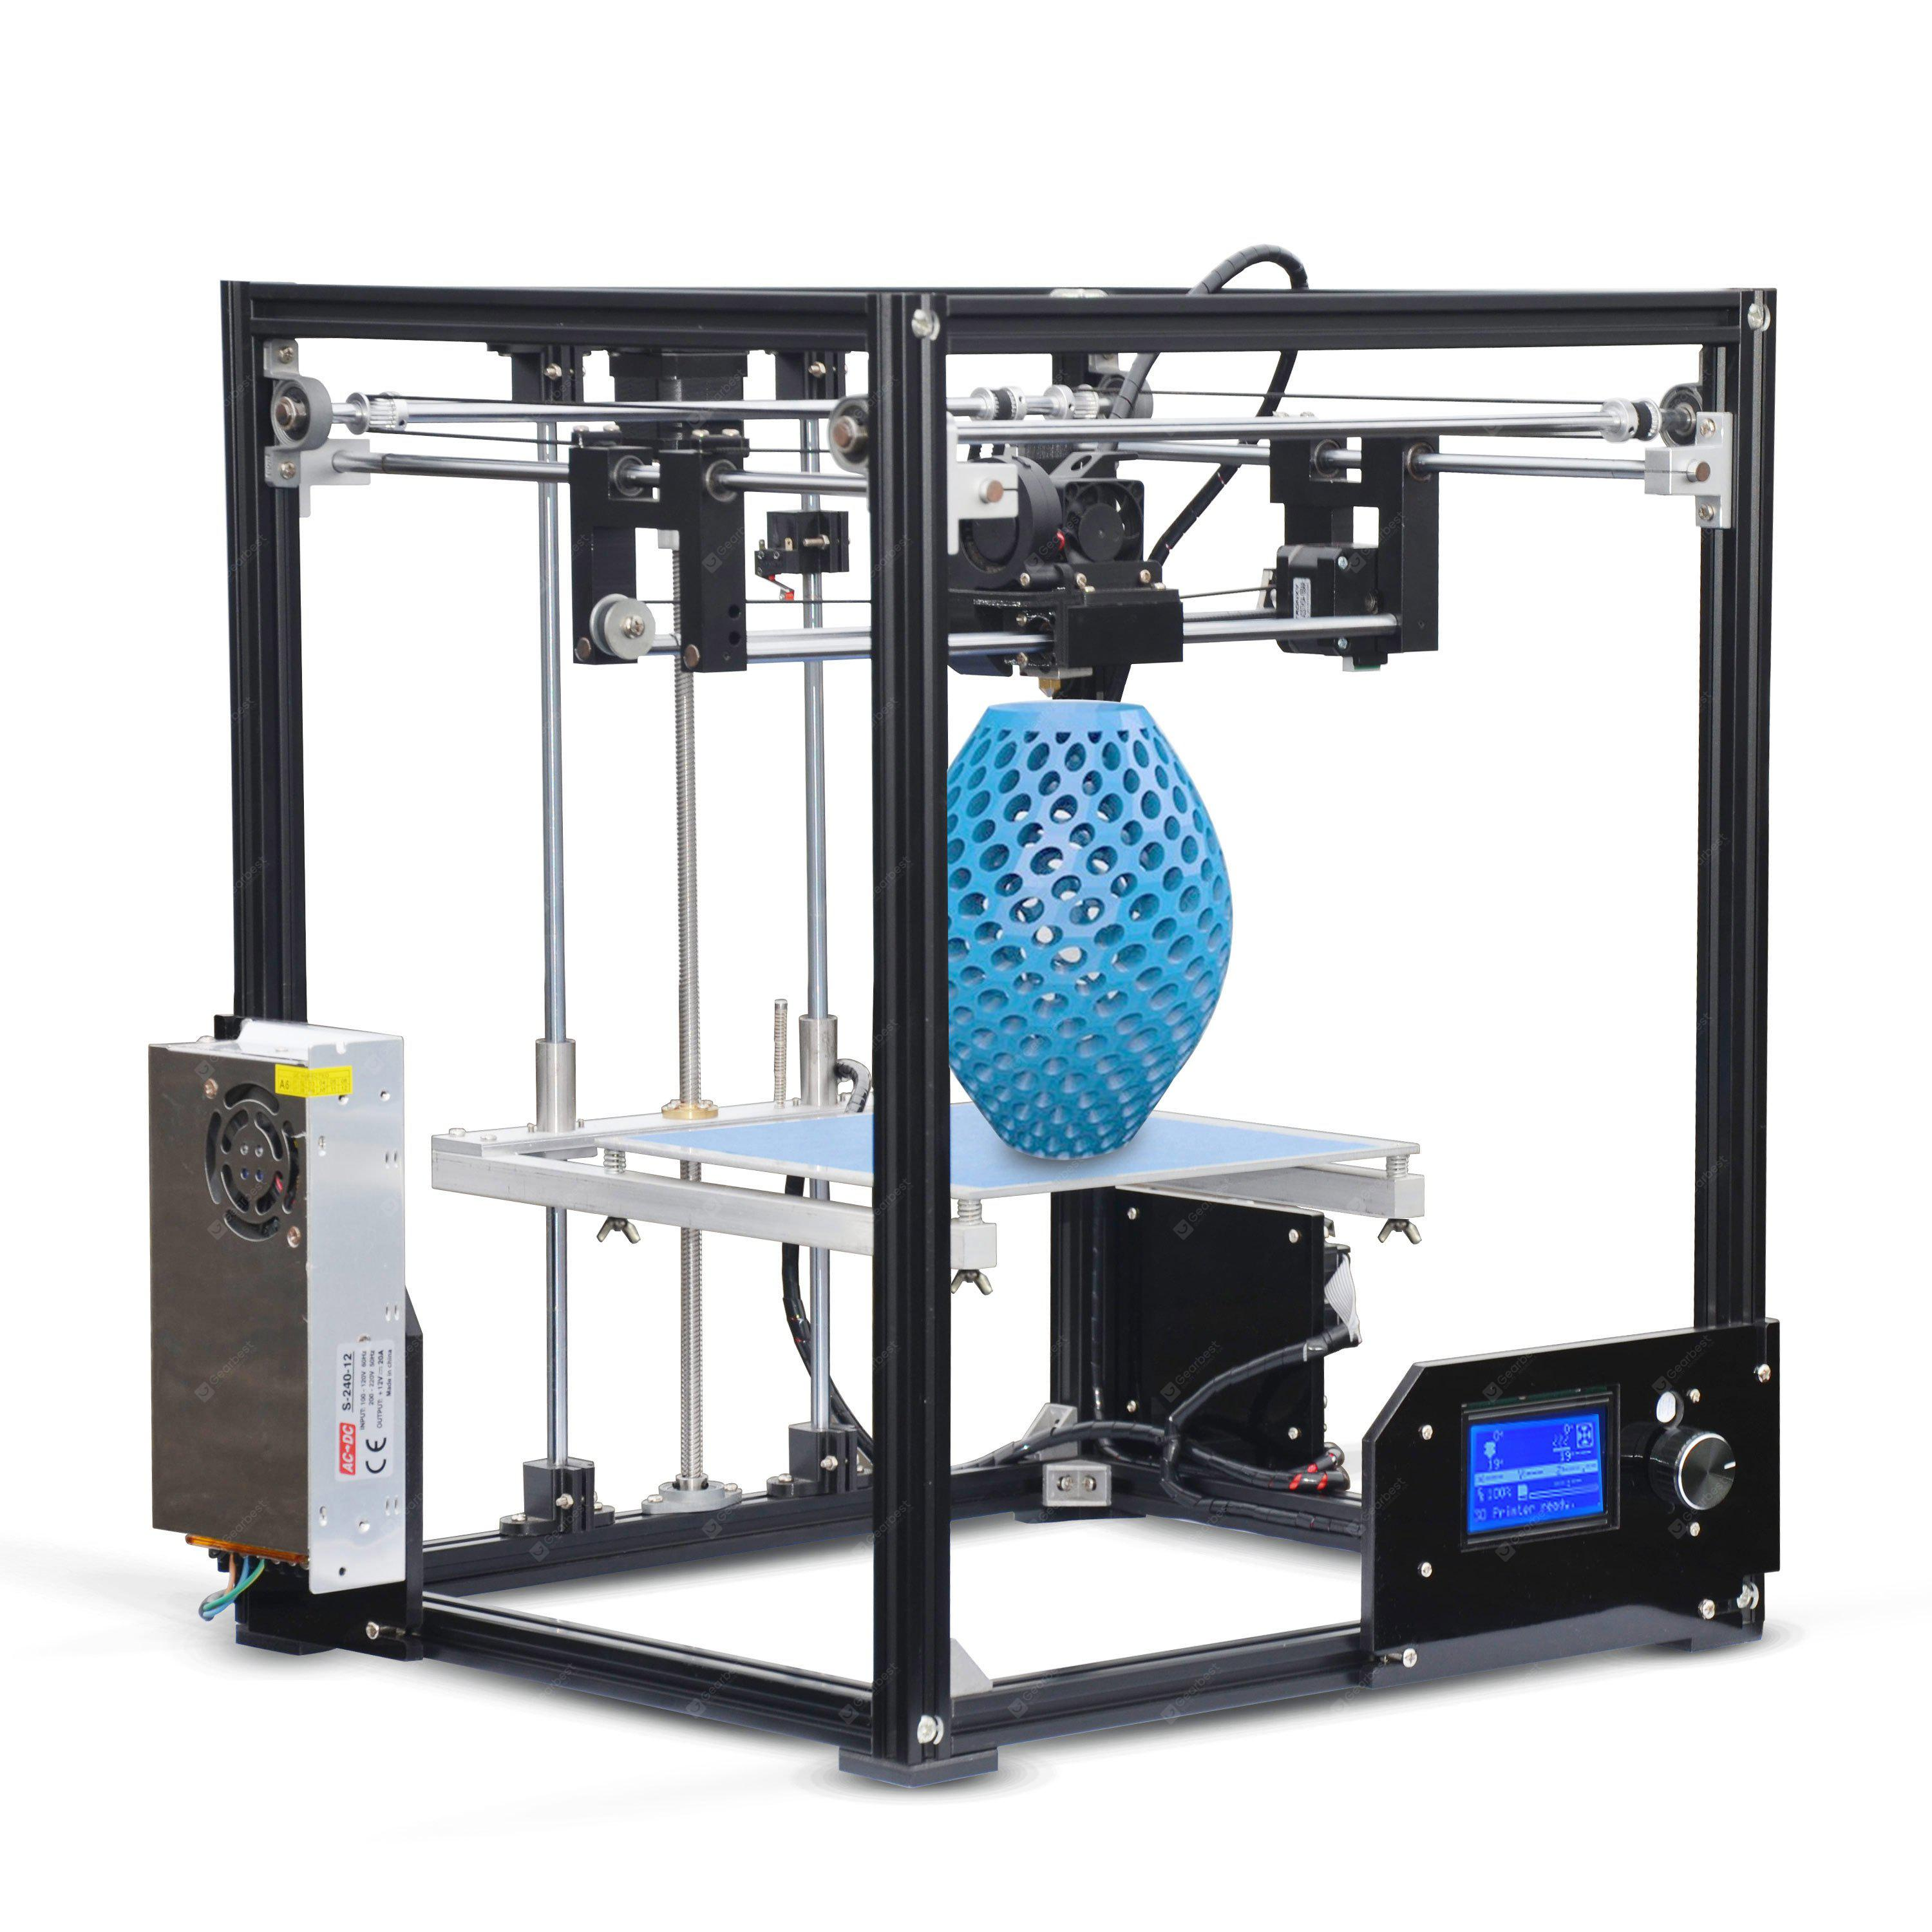 Tronxy X5 Aluminum Profile 210 X 210 X 280mm 3d Printer 274 20 Free